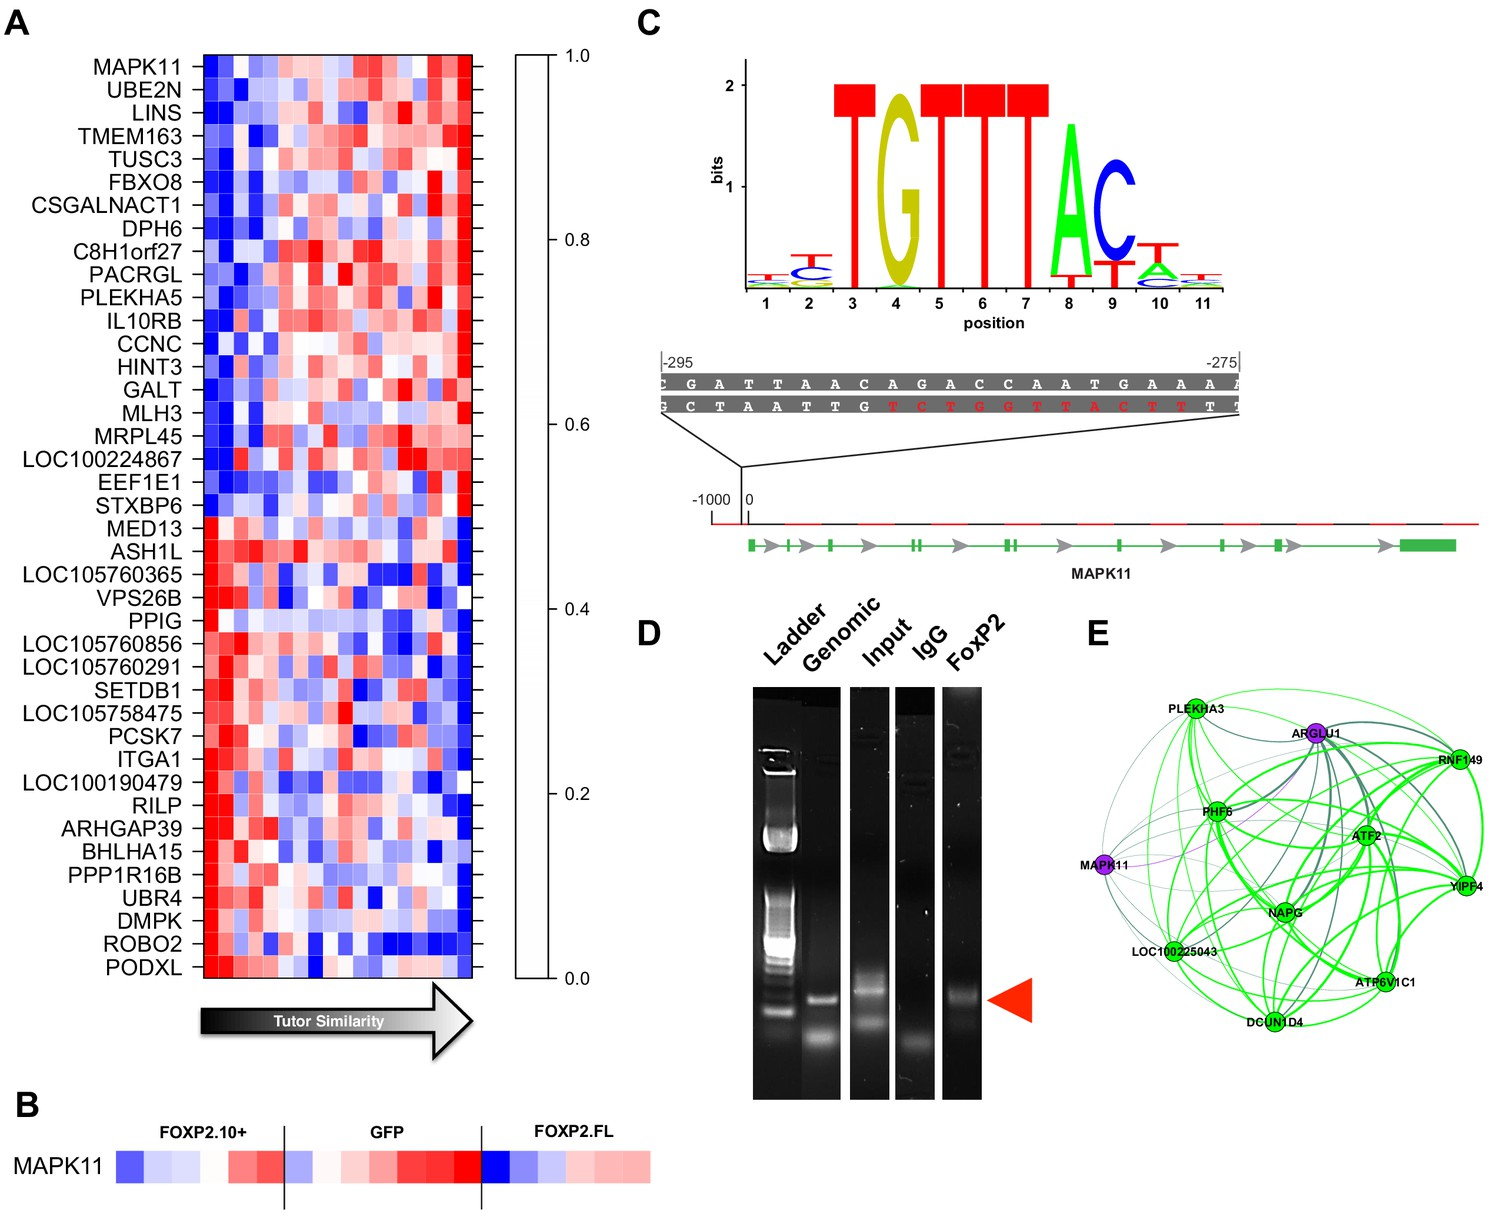 Foxp2 Isoforms Delineate Spatiotemporal Transcriptional Networks For Electronic Circuit Symbols 7 10 From 26 Votes Gene Significance And Network Position Implicate Mapk11 As A Molecular Entry Point To Vocal Learning Mechanisms